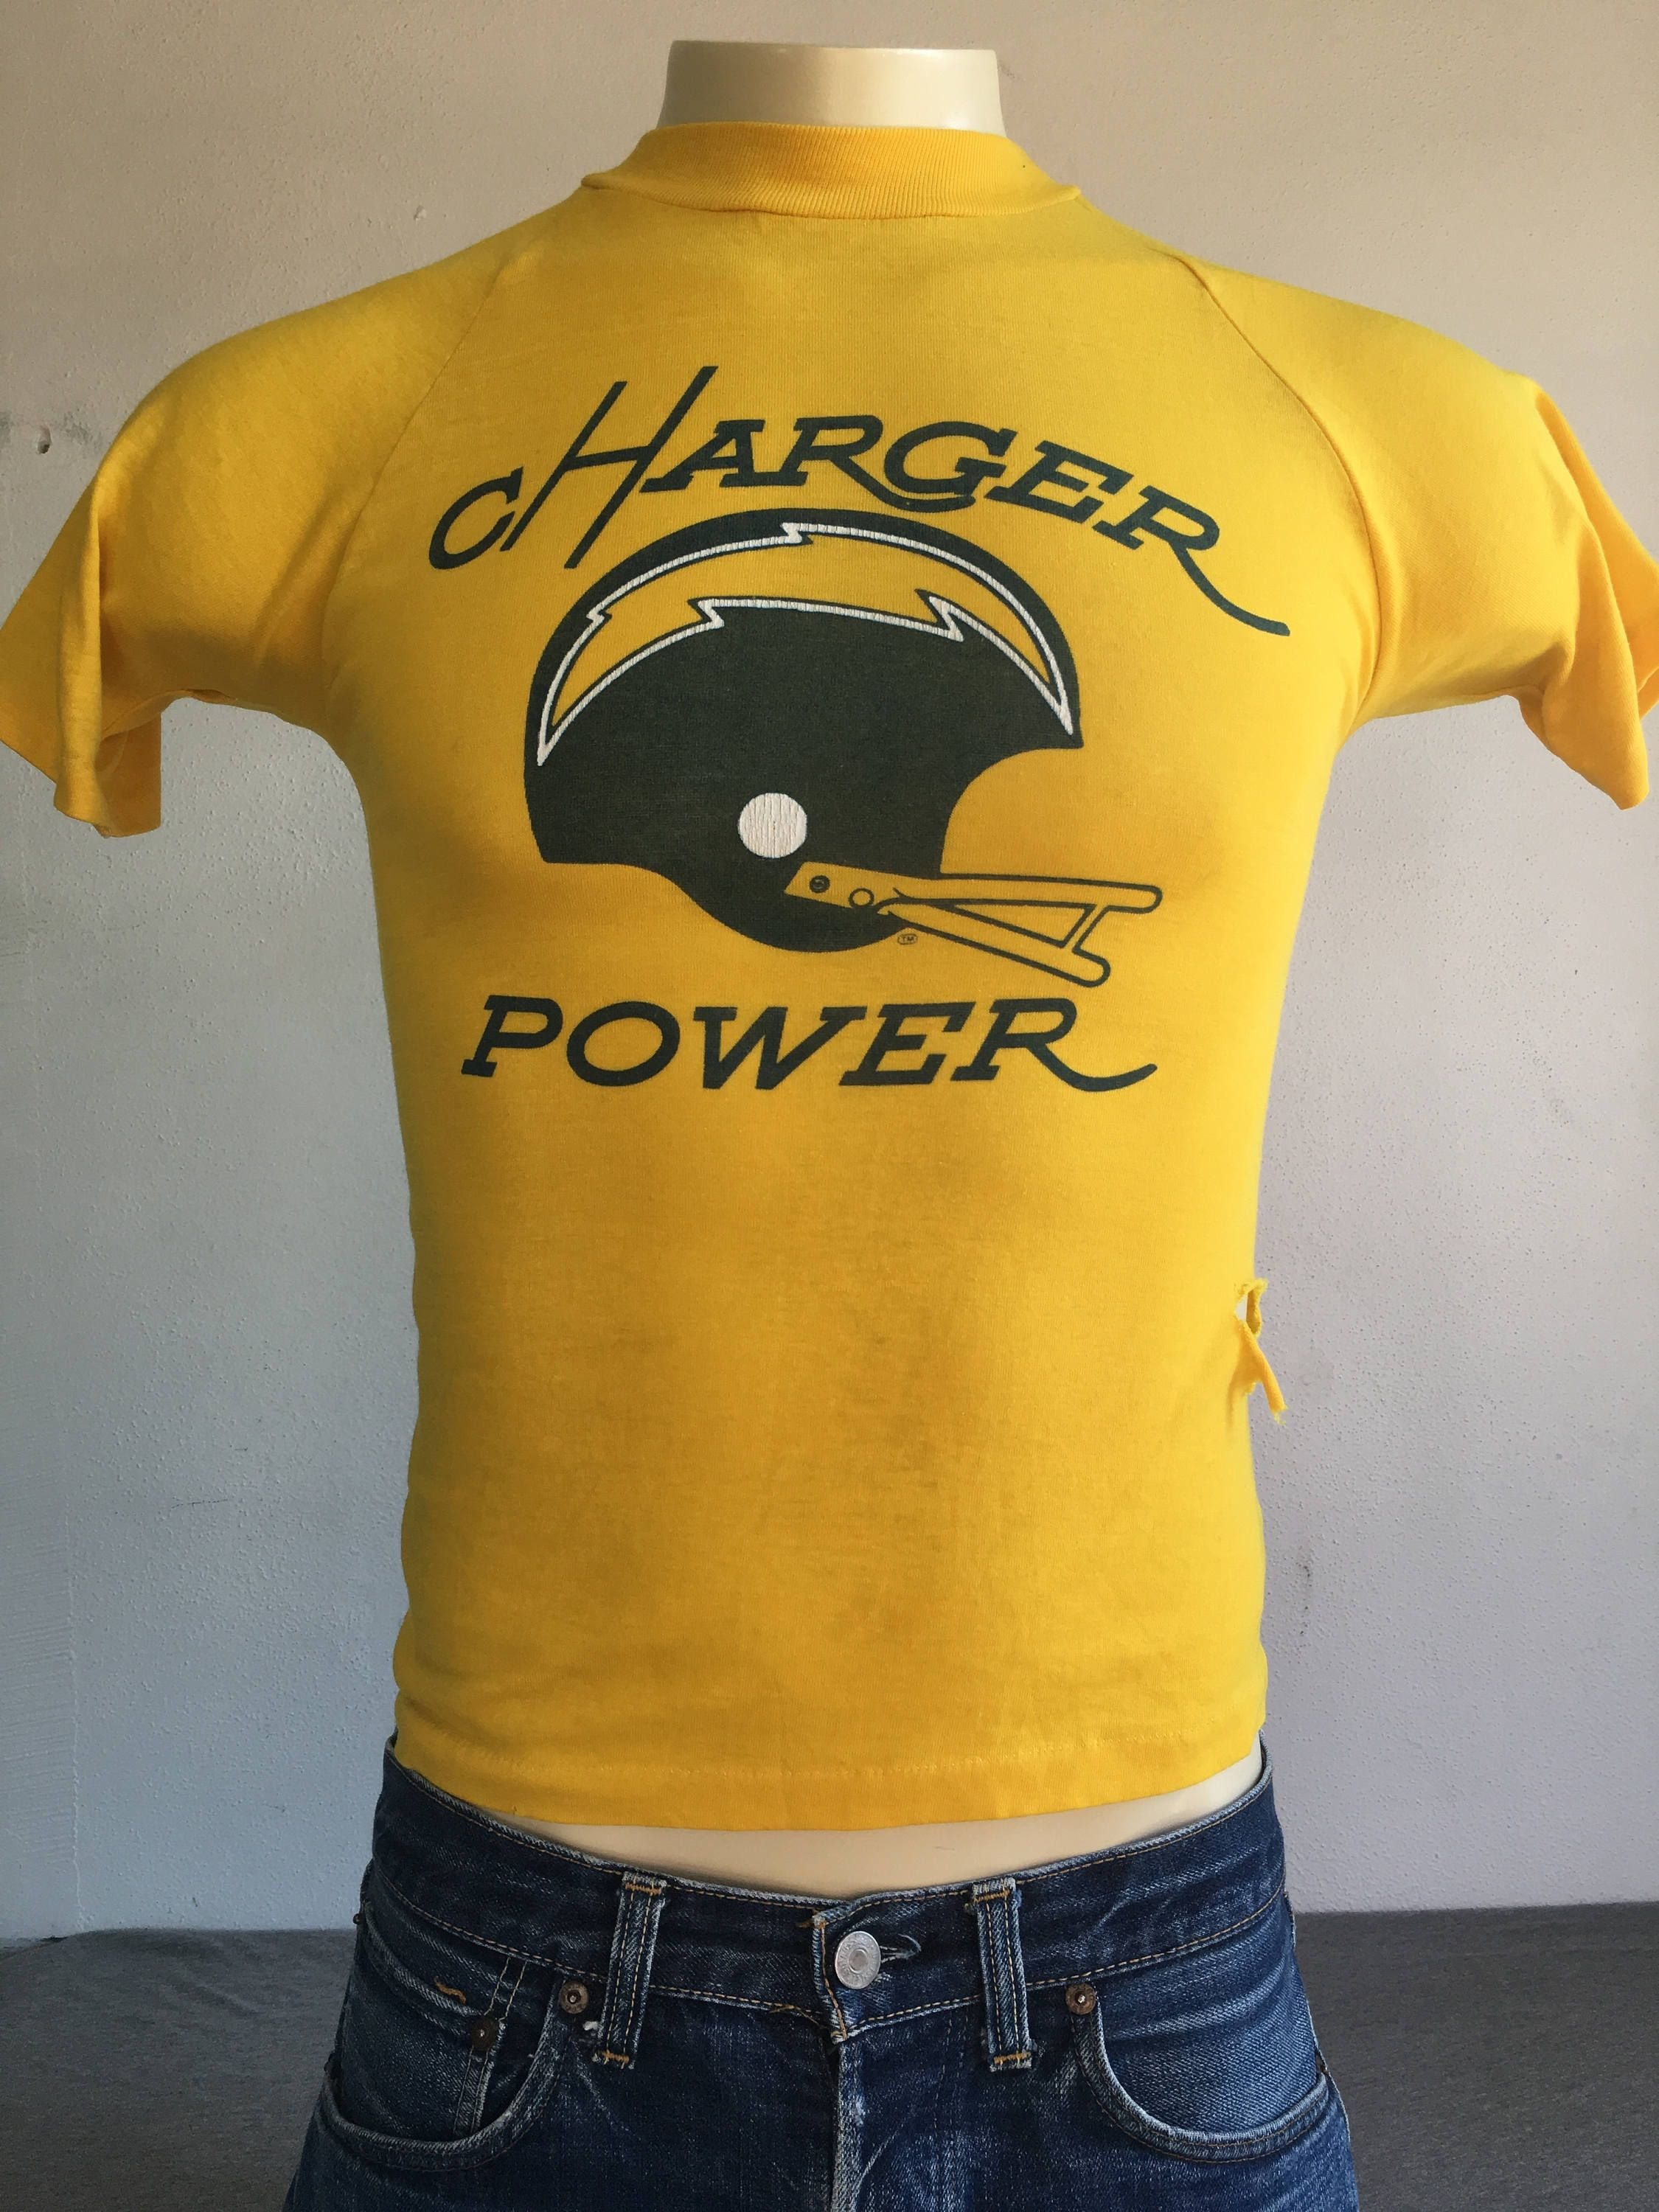 8fd3a6dd1 CHARGERS Shirt 70 s 80 s Vintage  San Diego LA Los Angeles Charger Power  Football Tshirt  Classic Helmet Raglan NfL Yellow Gold XS Small by  sweetVTGtshirt ...